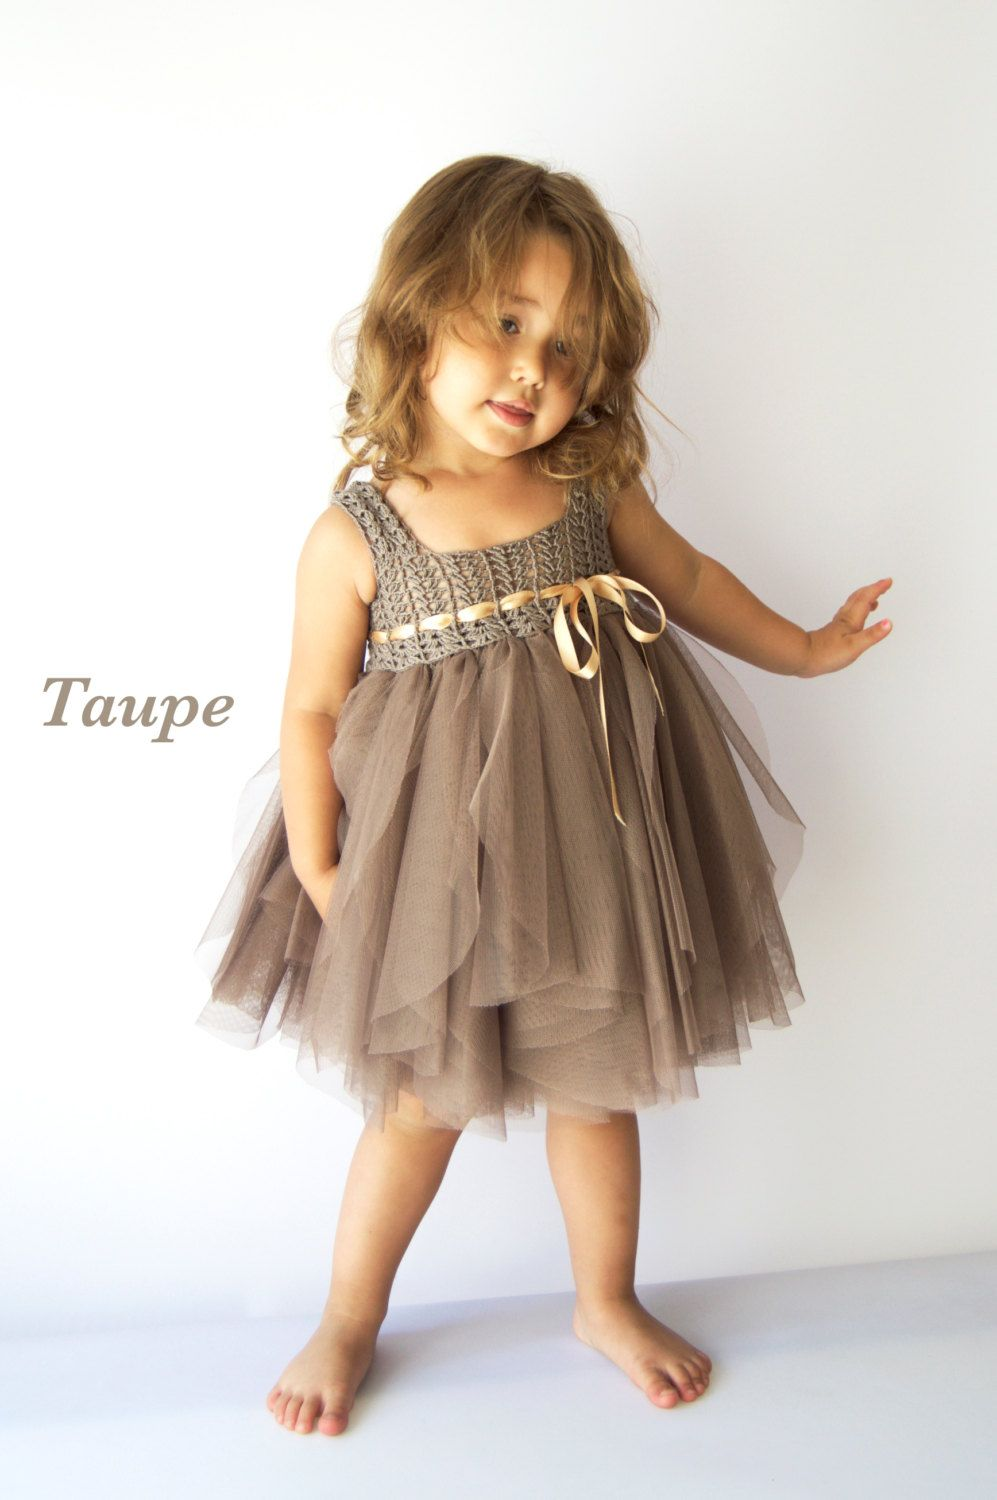 Taupe Baby Tulle Dress with Empire Waist and by AylinkaShop